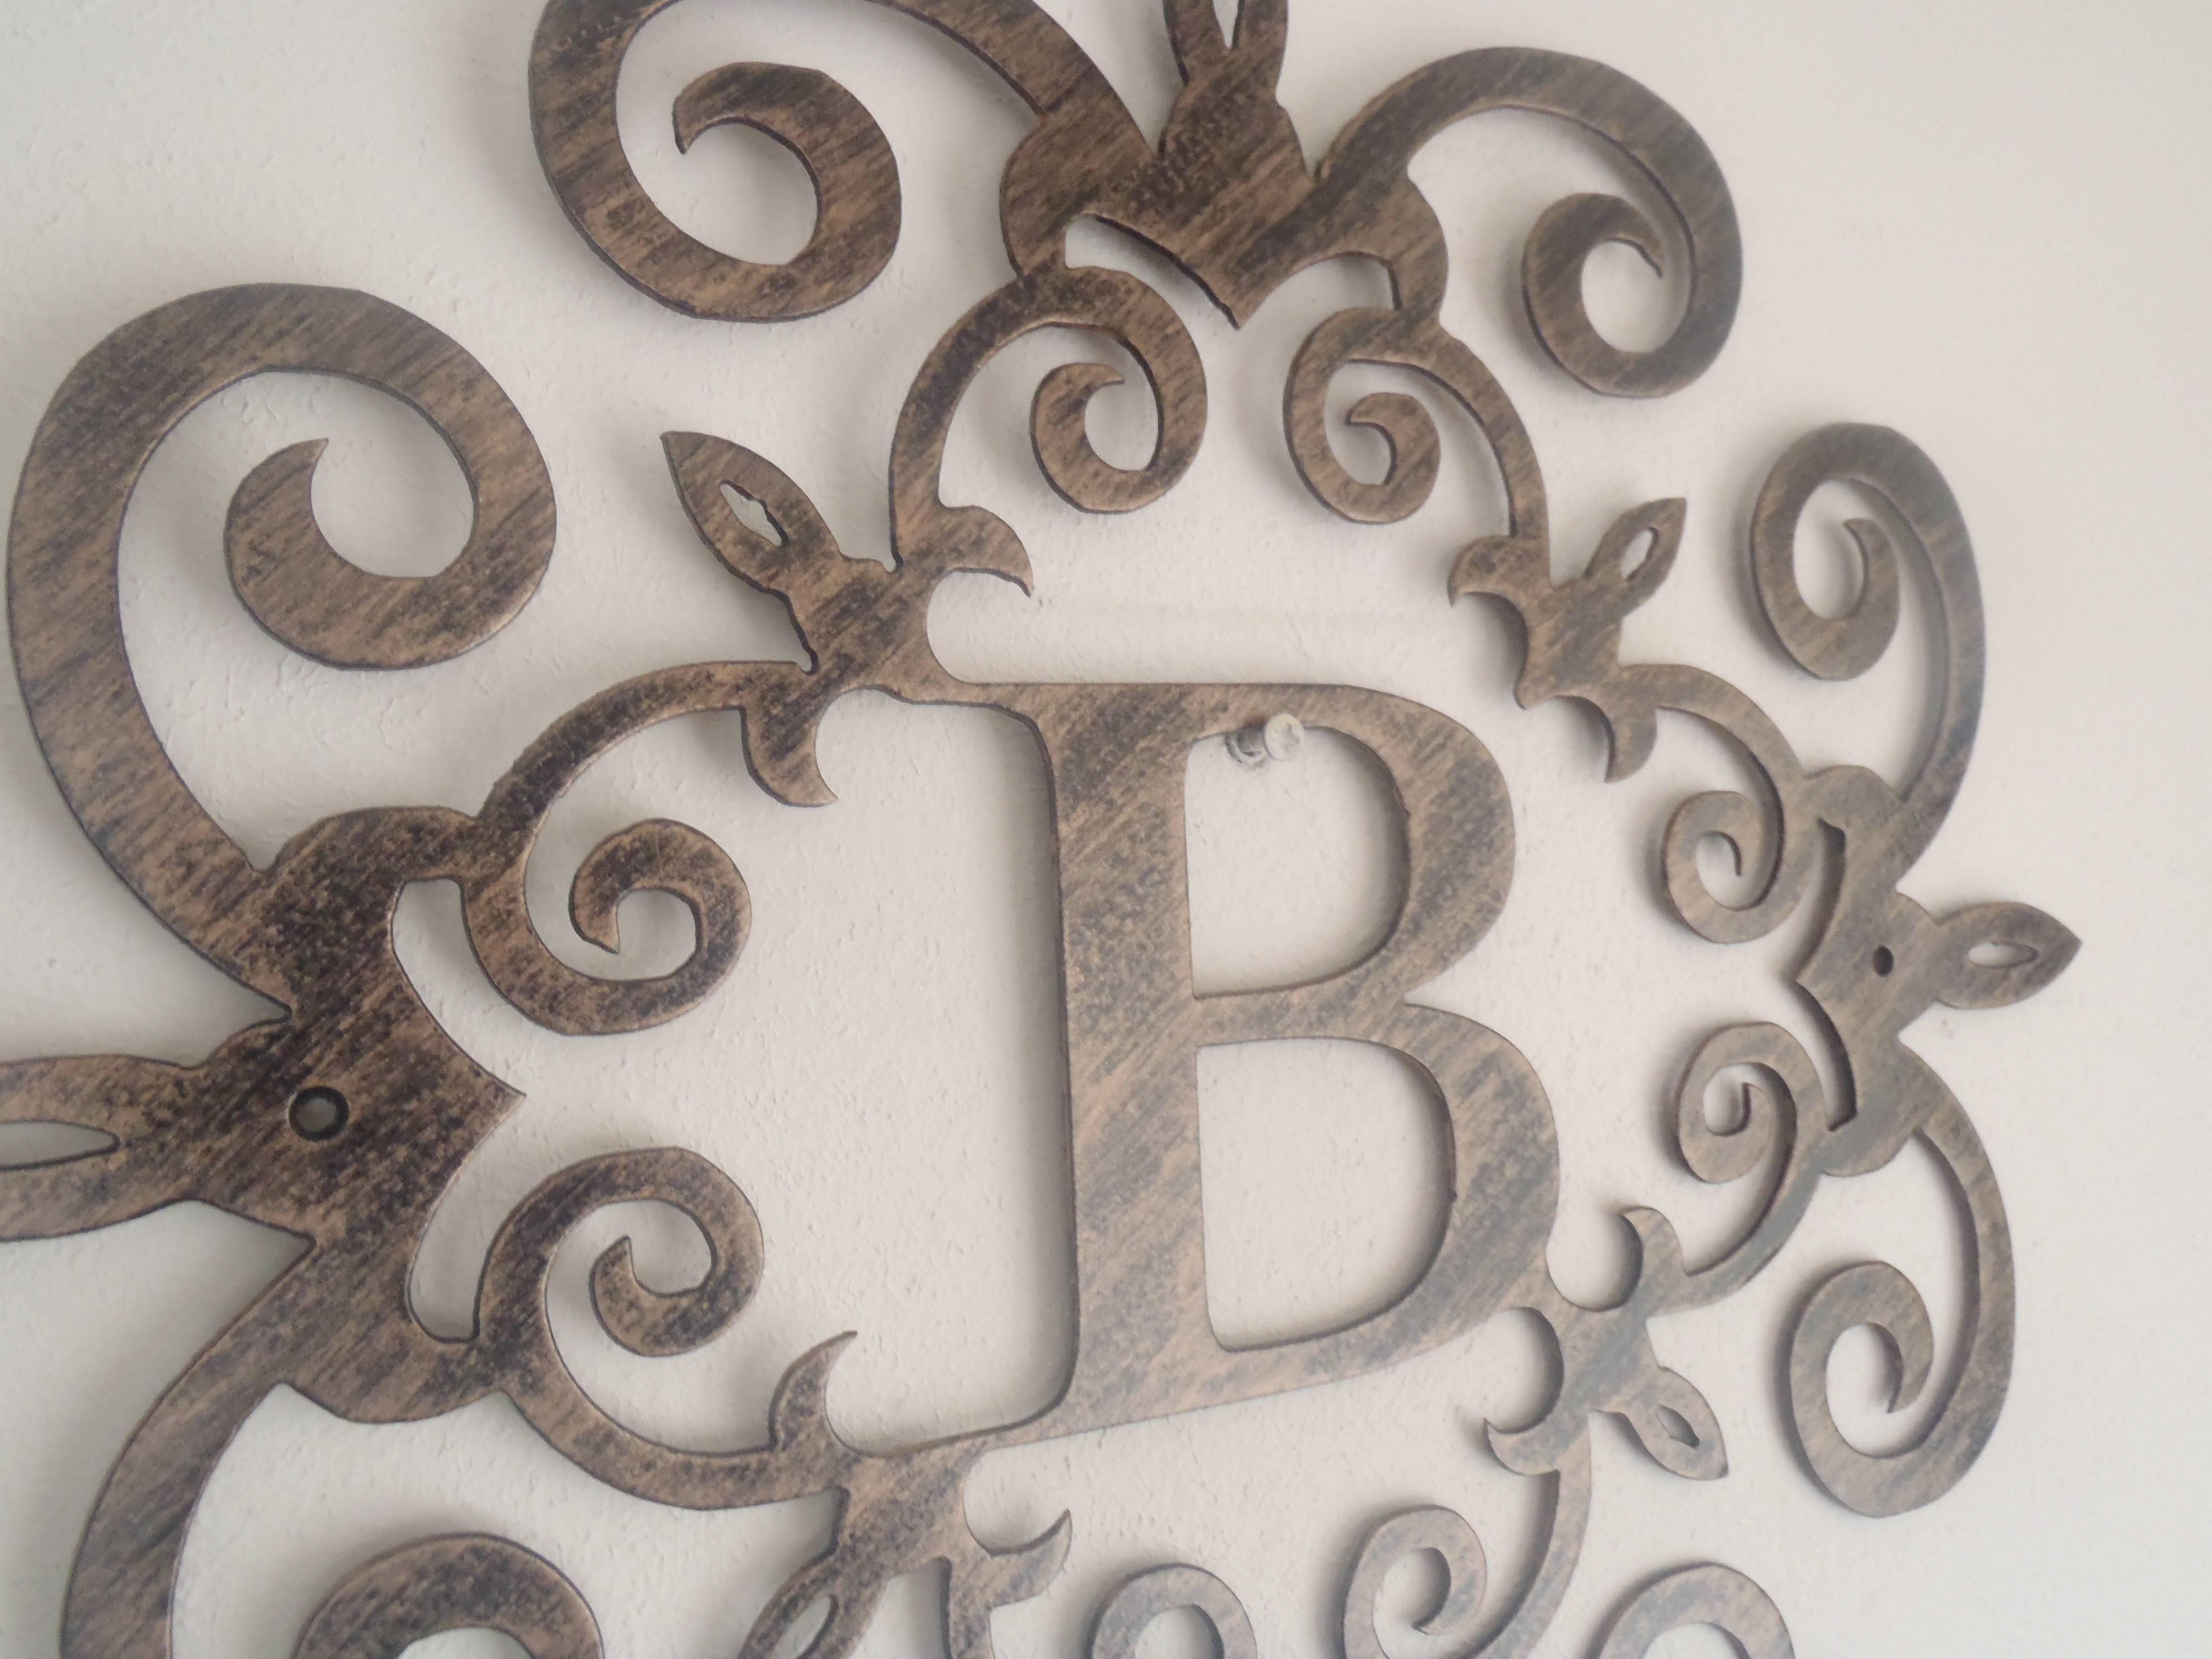 Wall Decor: Initial Letter B Wall Decor Ideas For Home Decor Metal Inside Most Recent Monogram Metal Wall Art (View 8 of 20)